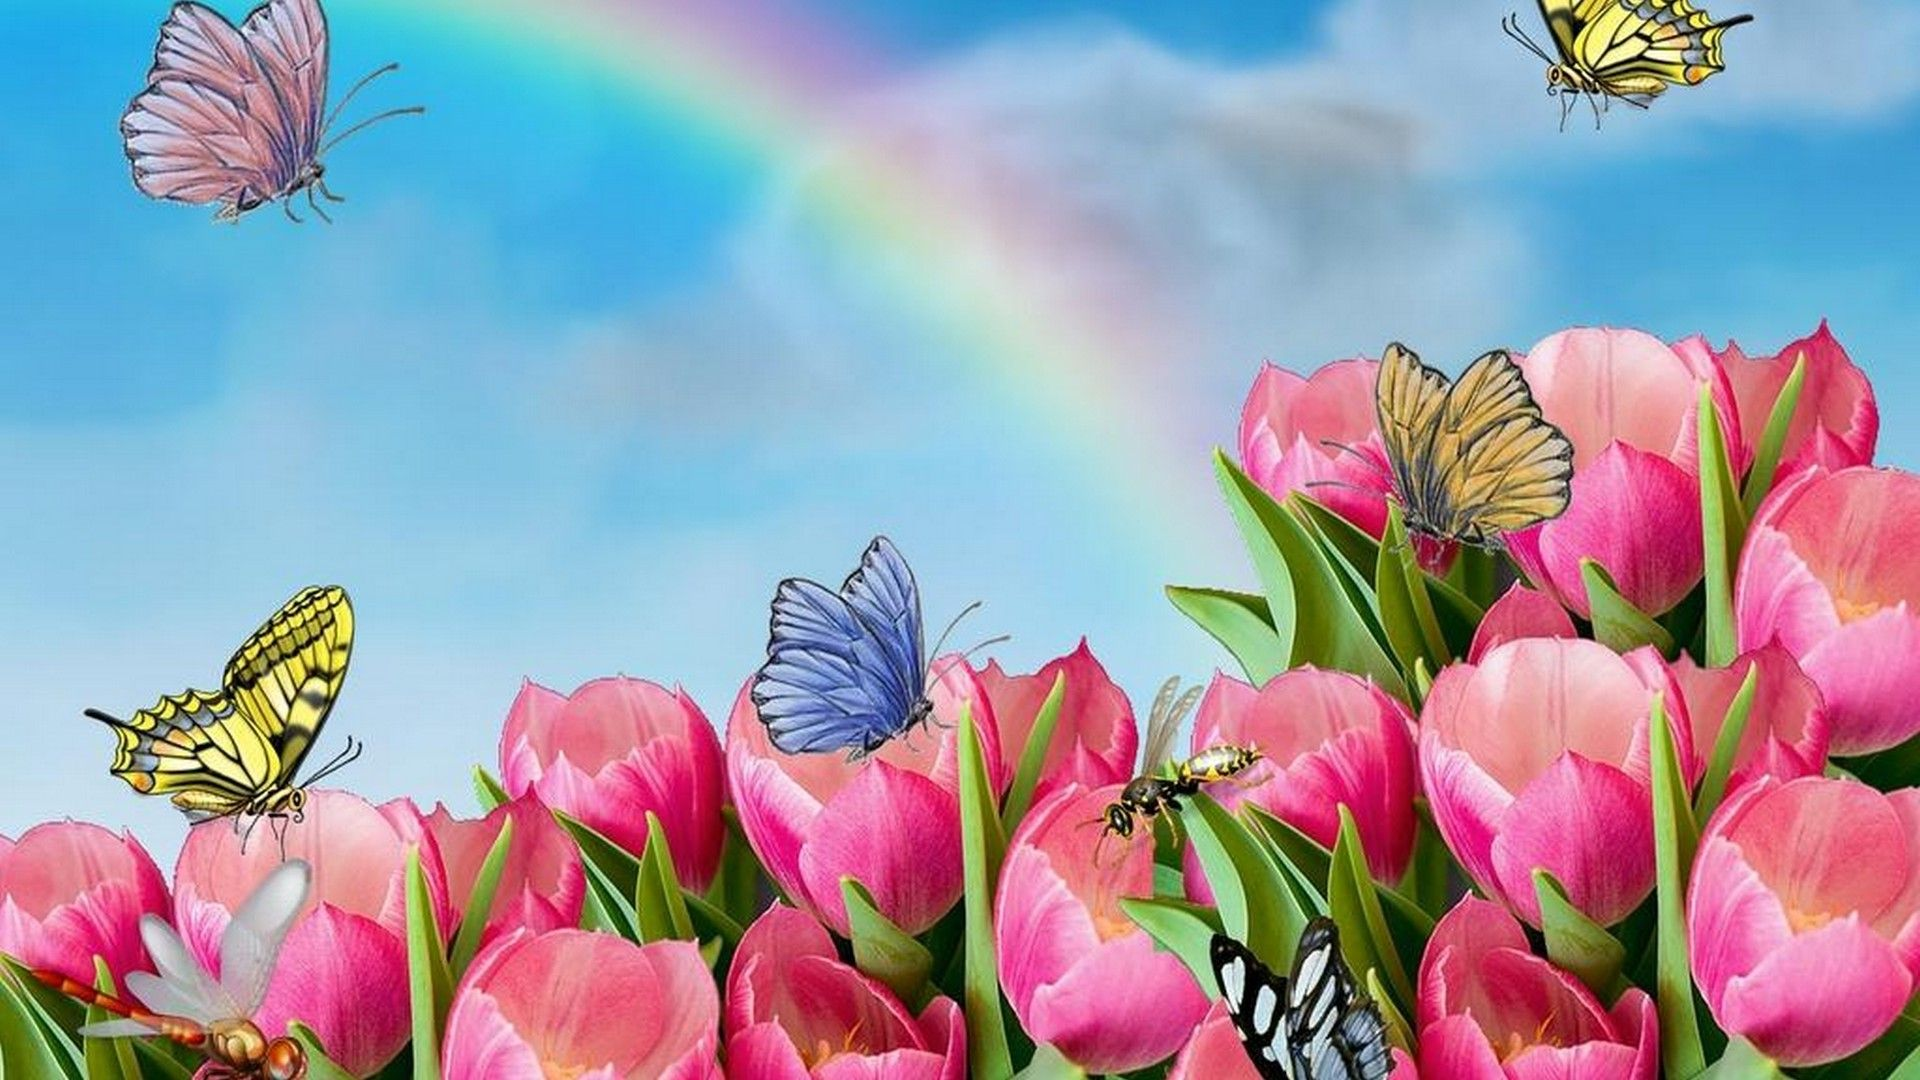 Animated Flower Wallpaper Dowload Fancy Images - Animated Images Of Flowers , HD Wallpaper & Backgrounds